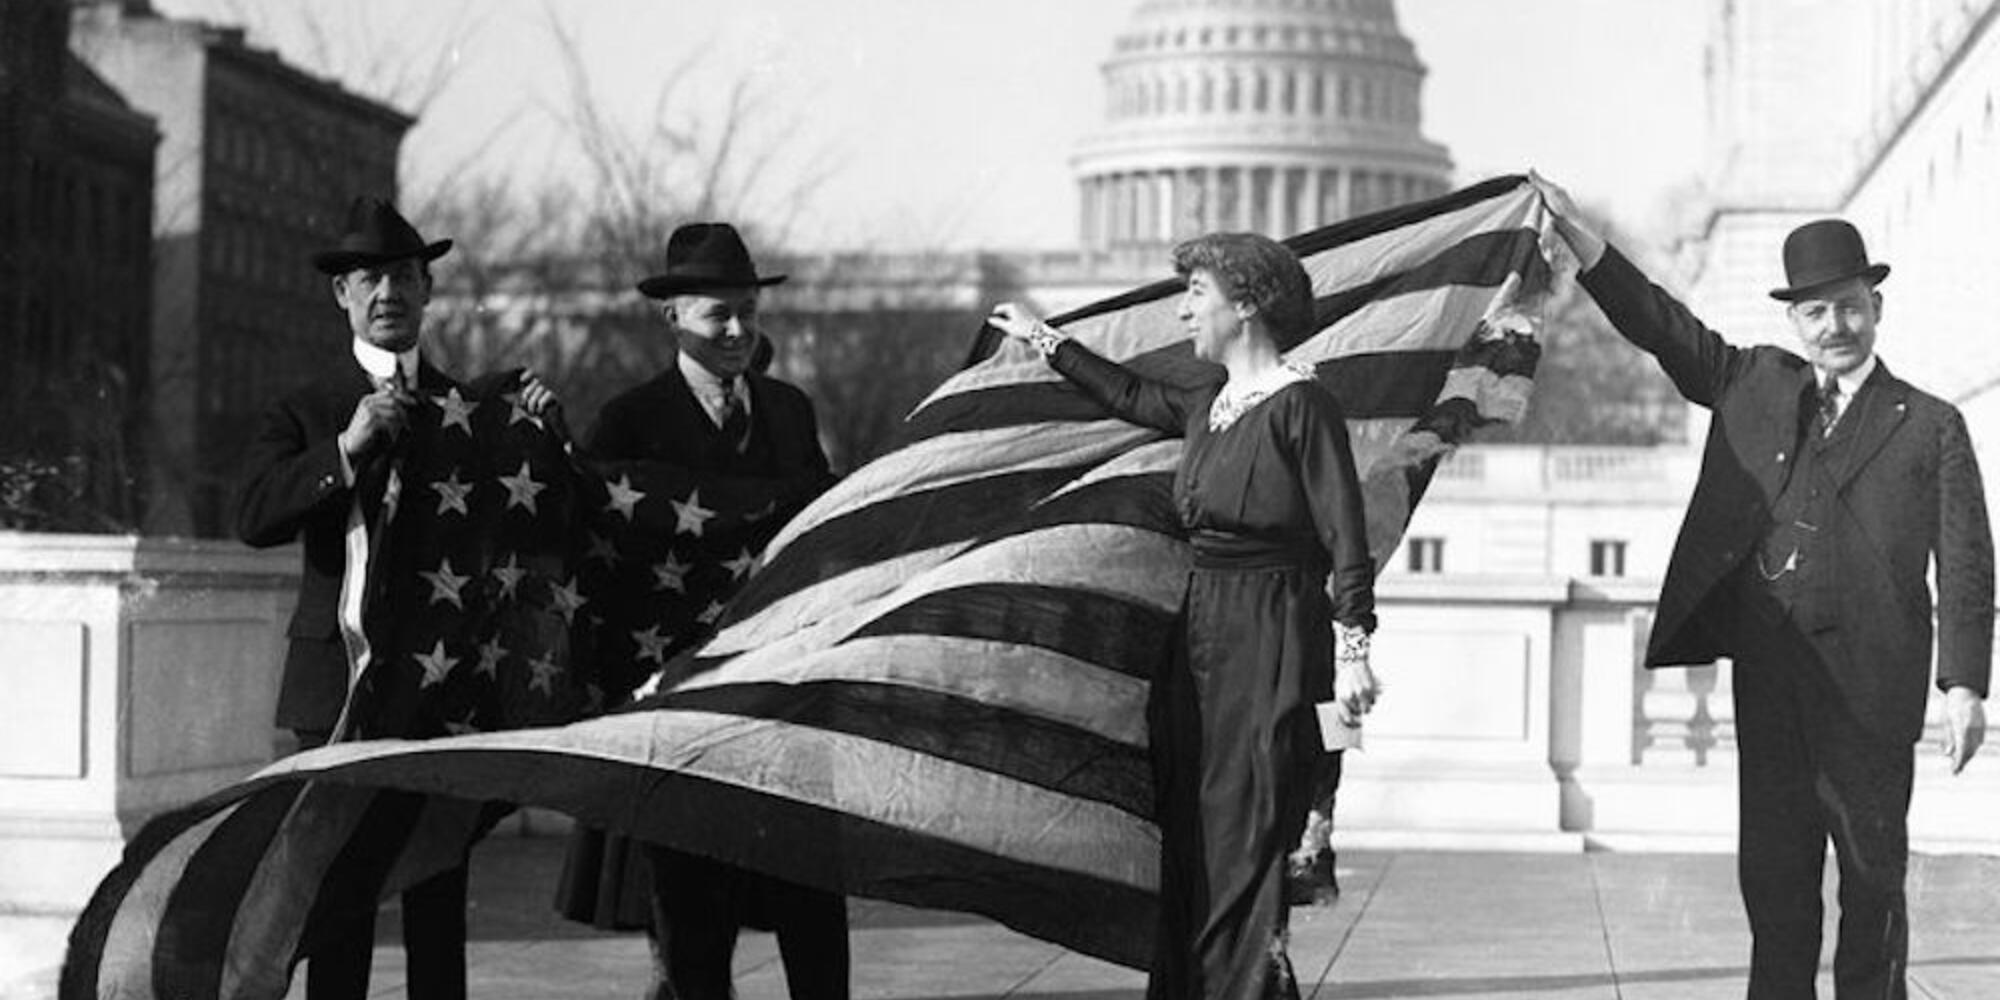 Jeanette Rankin, first Woman elected to Congress, receiving the flag of the House of Representatives upon passage of women's suffrage.